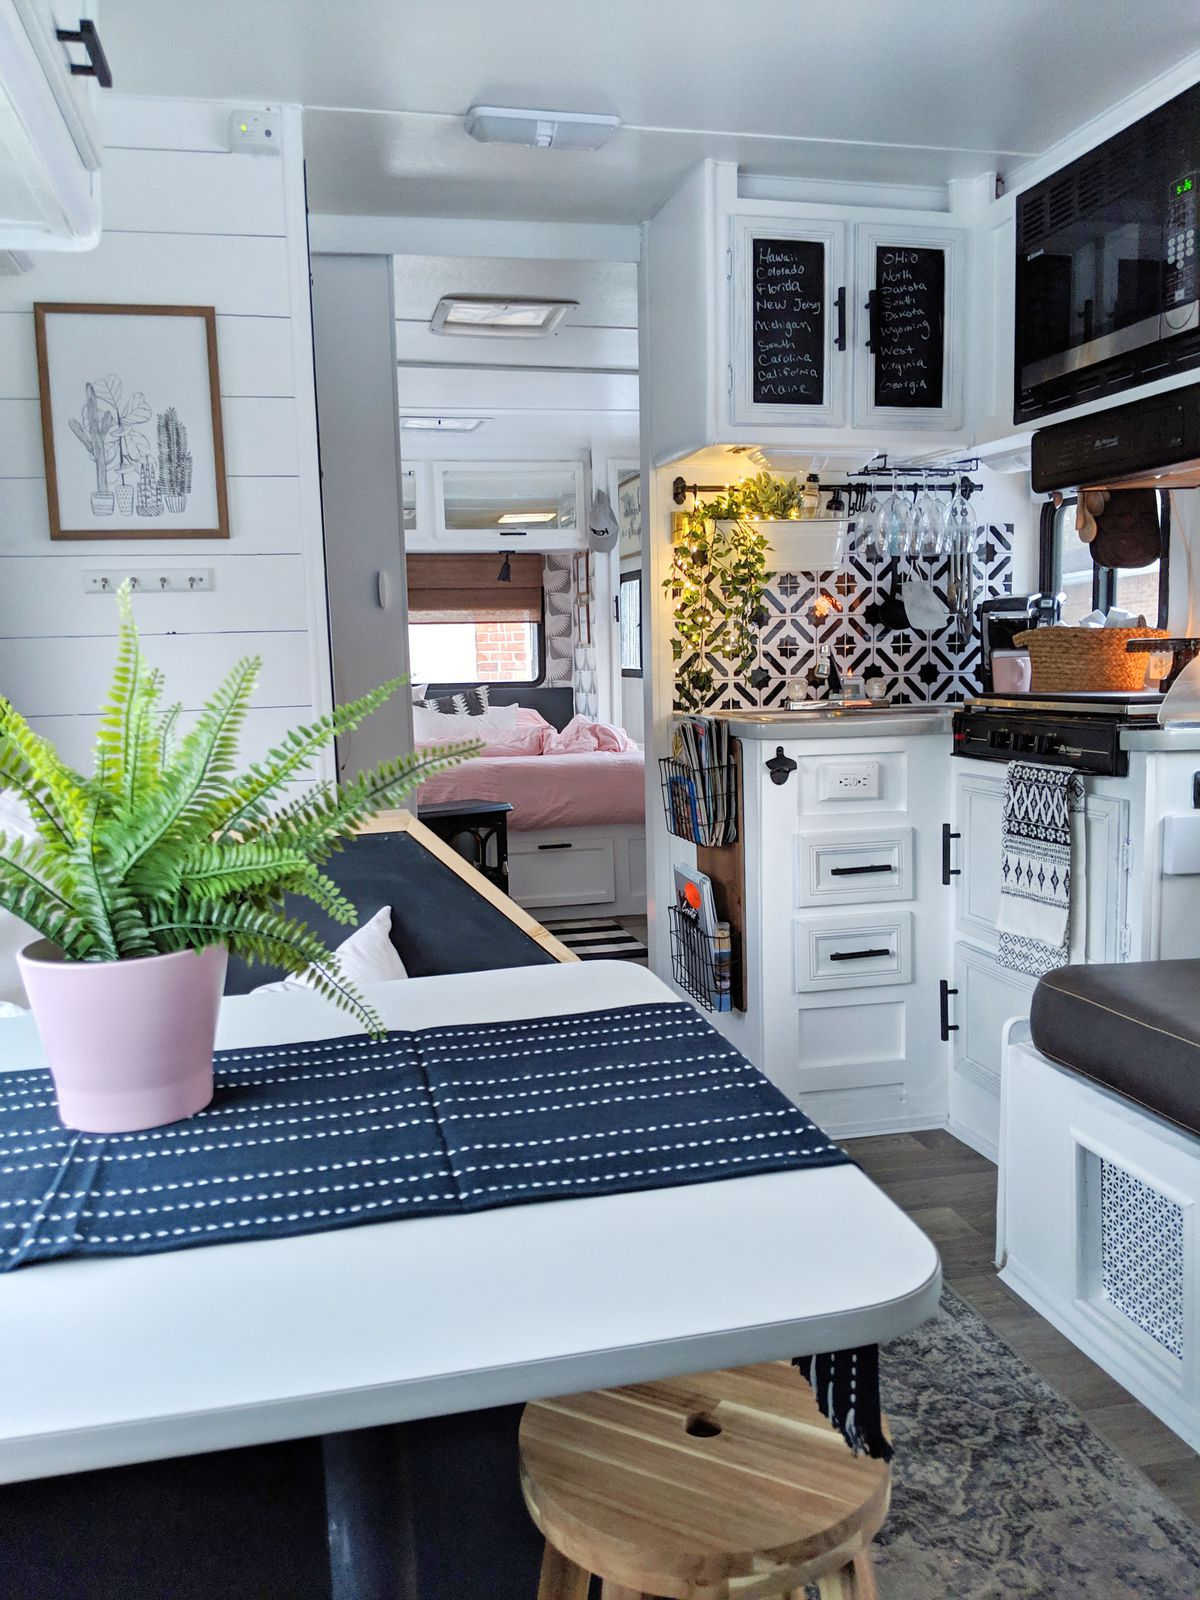 Vintage RV: Drab '90s camper renovated into stylish home-on